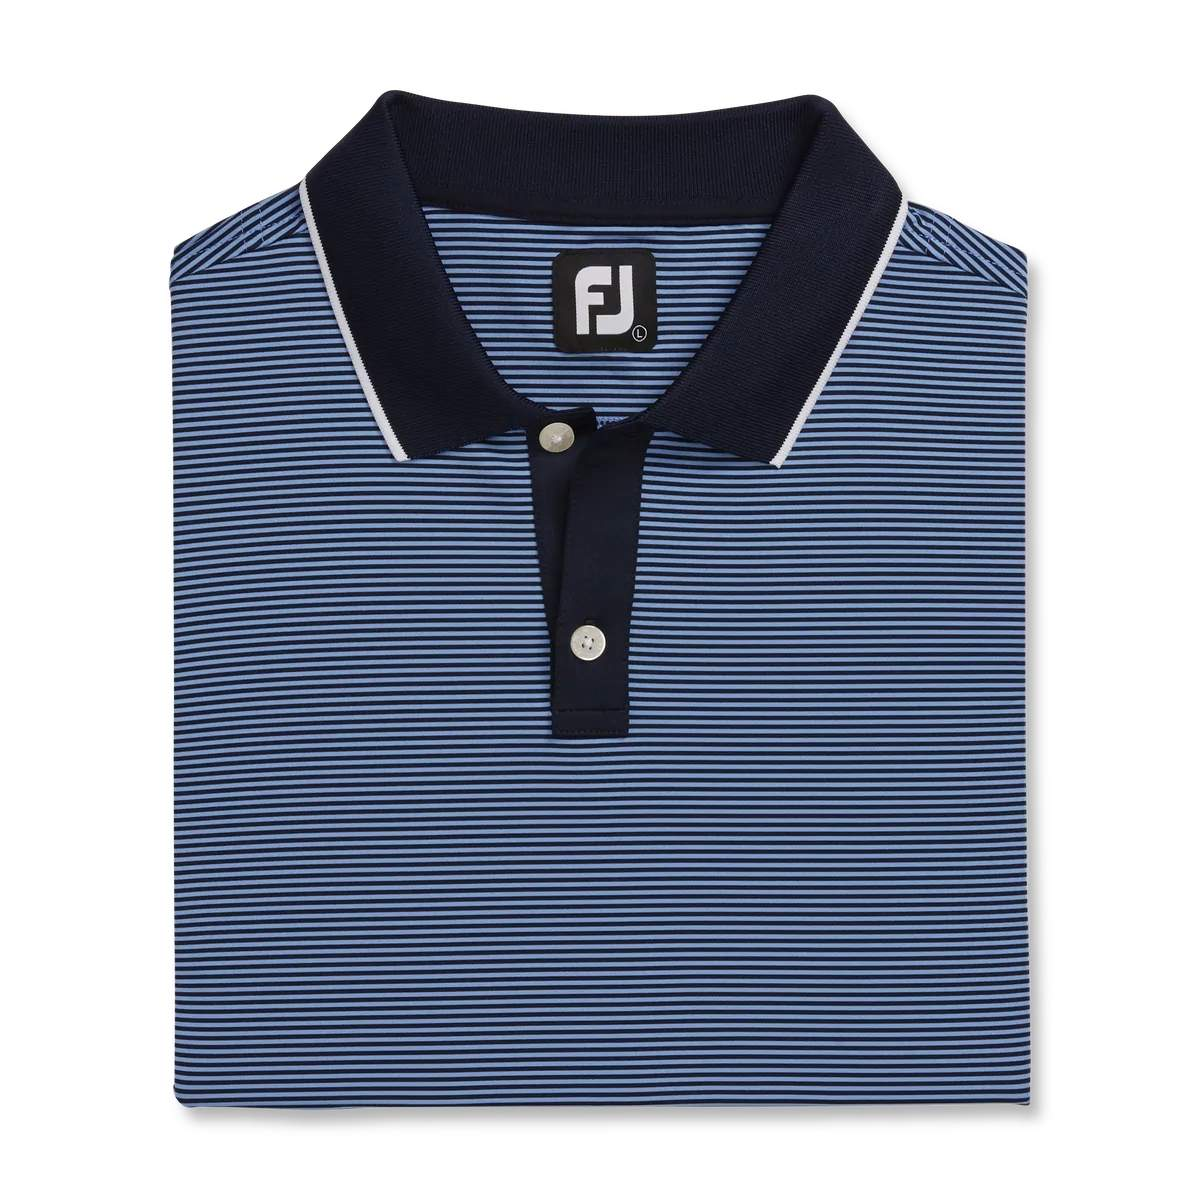 FootJoy Men's Lisle Ministripe Navy/Lagoon Polo